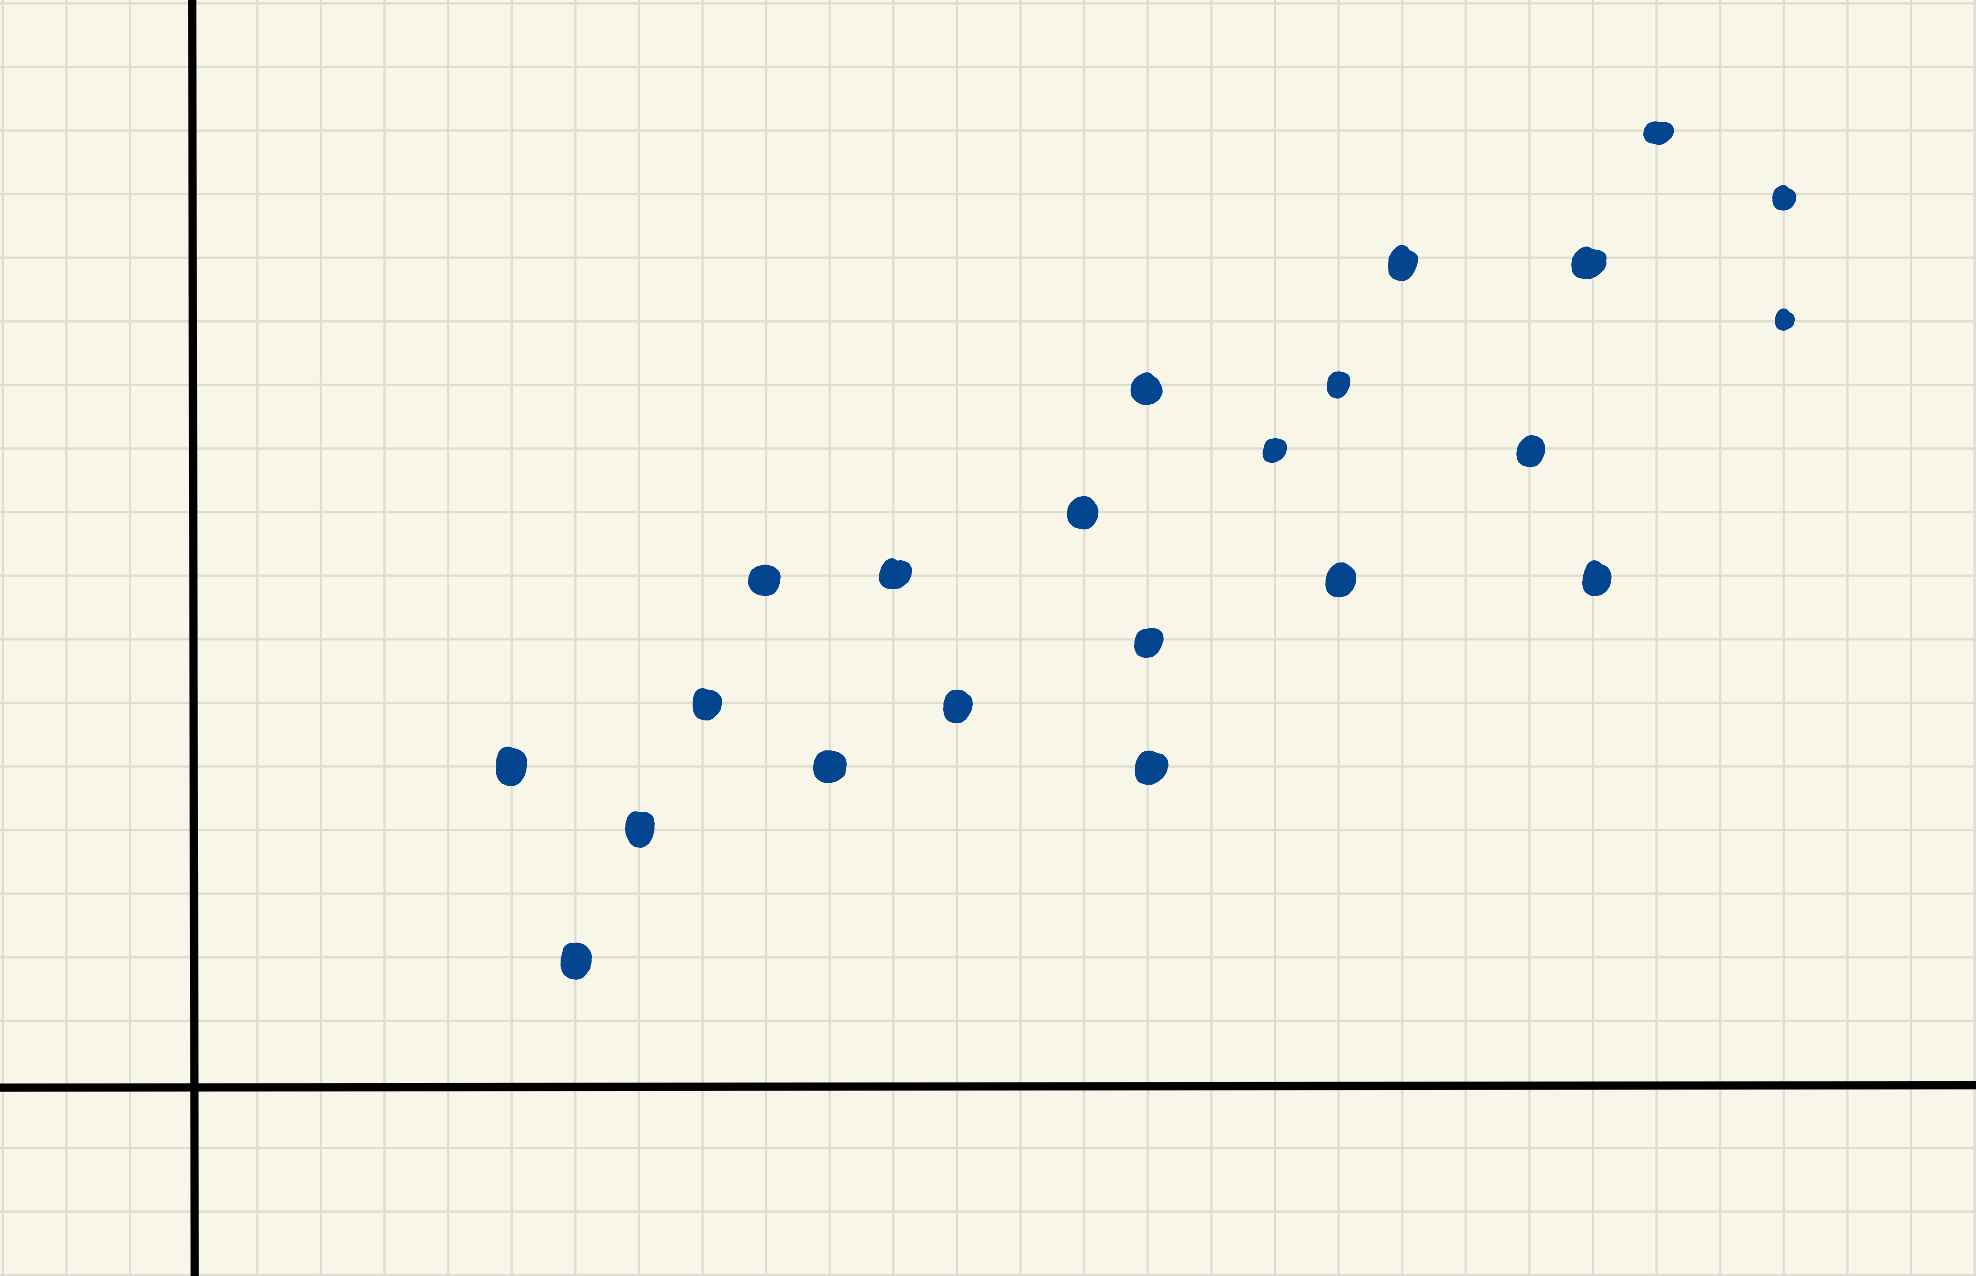 A hand-drawn scatterplot of blue dots on a two-dimensional grid.